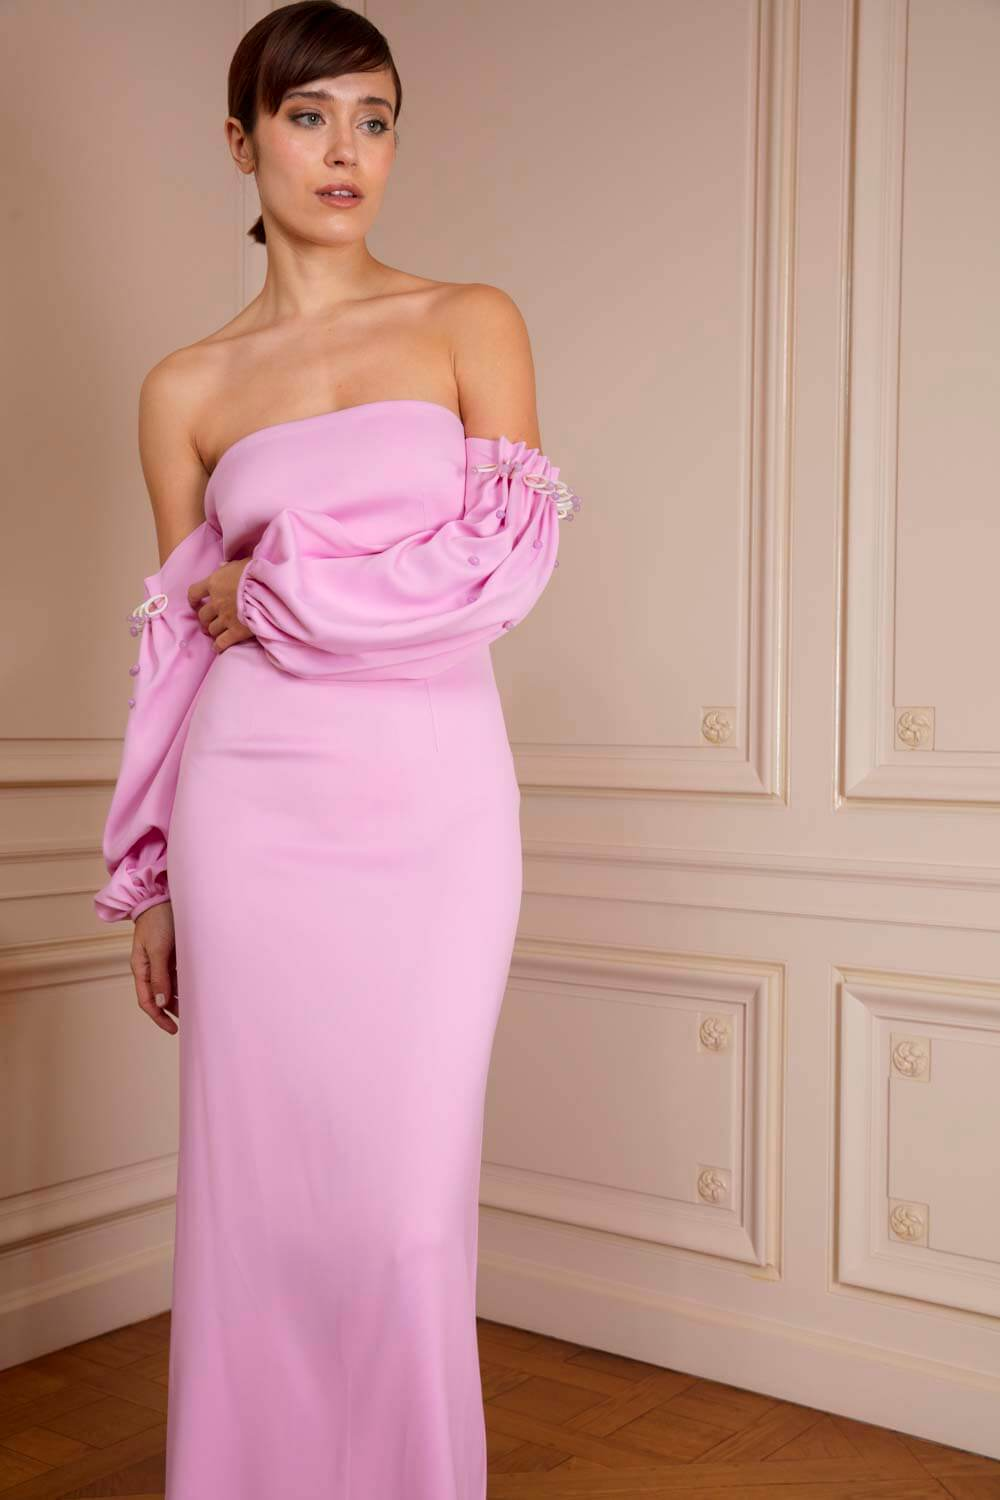 boutiquelessuites.com - LesSuitesOnline buy Safiyaa - Pink off-the ...